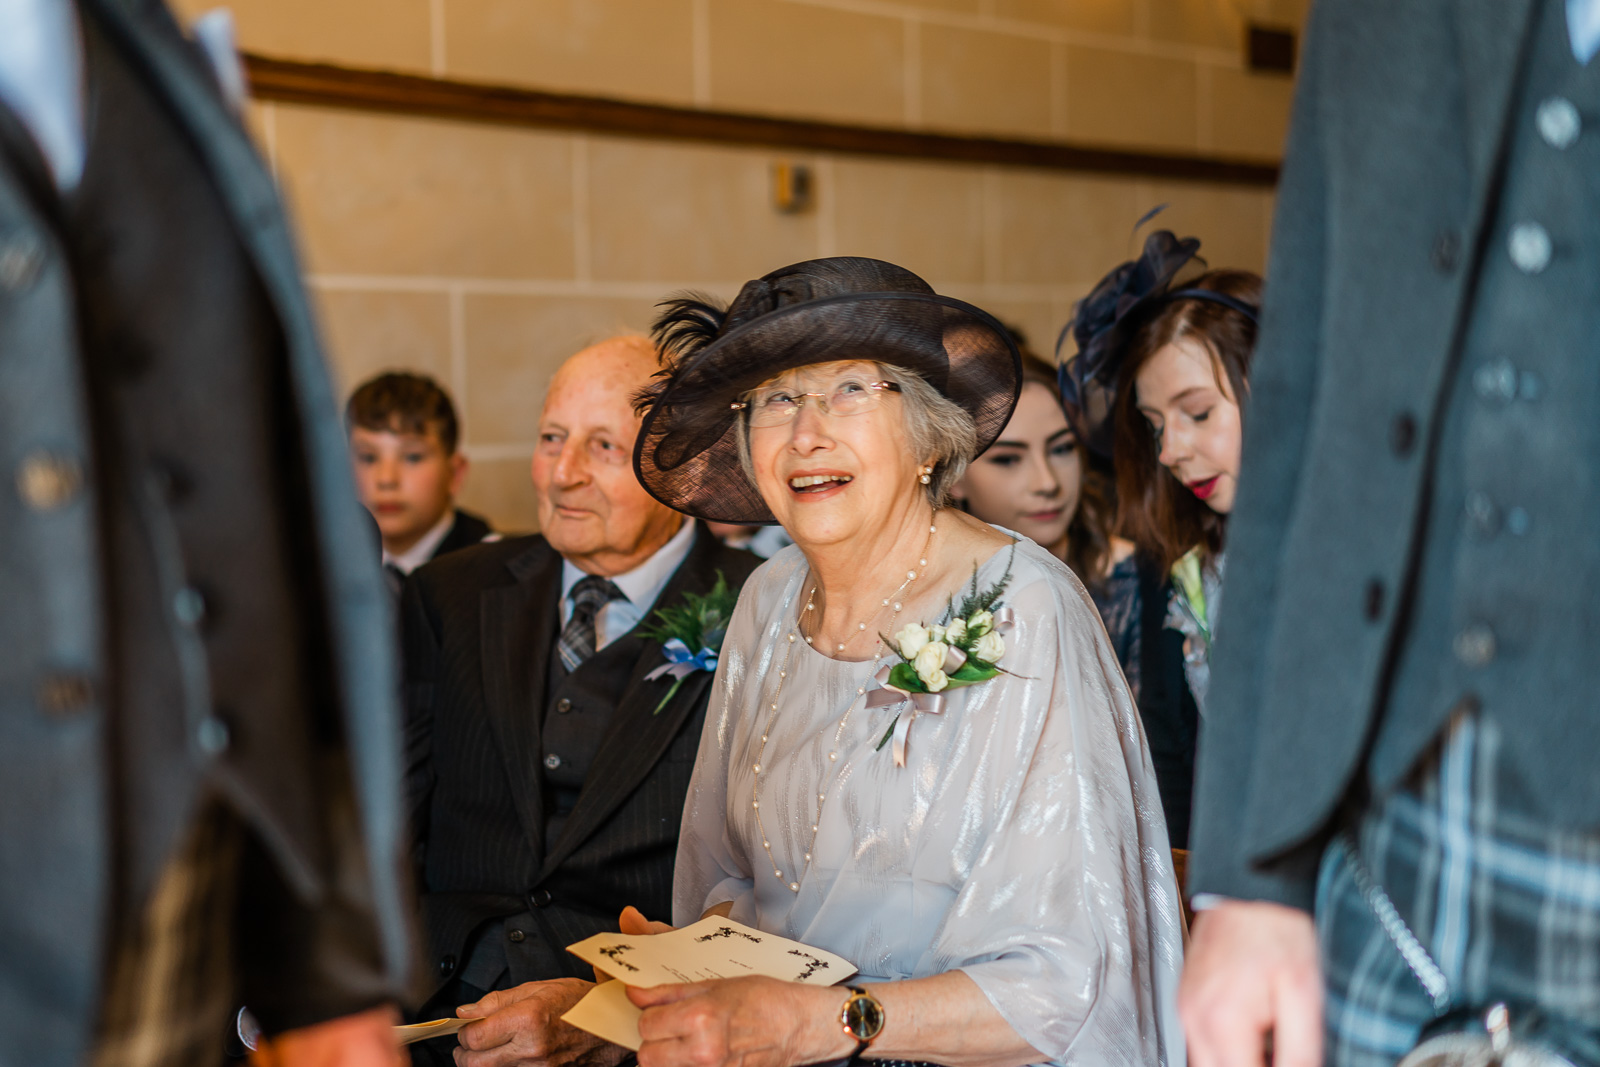 dalhousie_castle_wedding_edinburgh_dearlyphotography (78 of 371).jpg